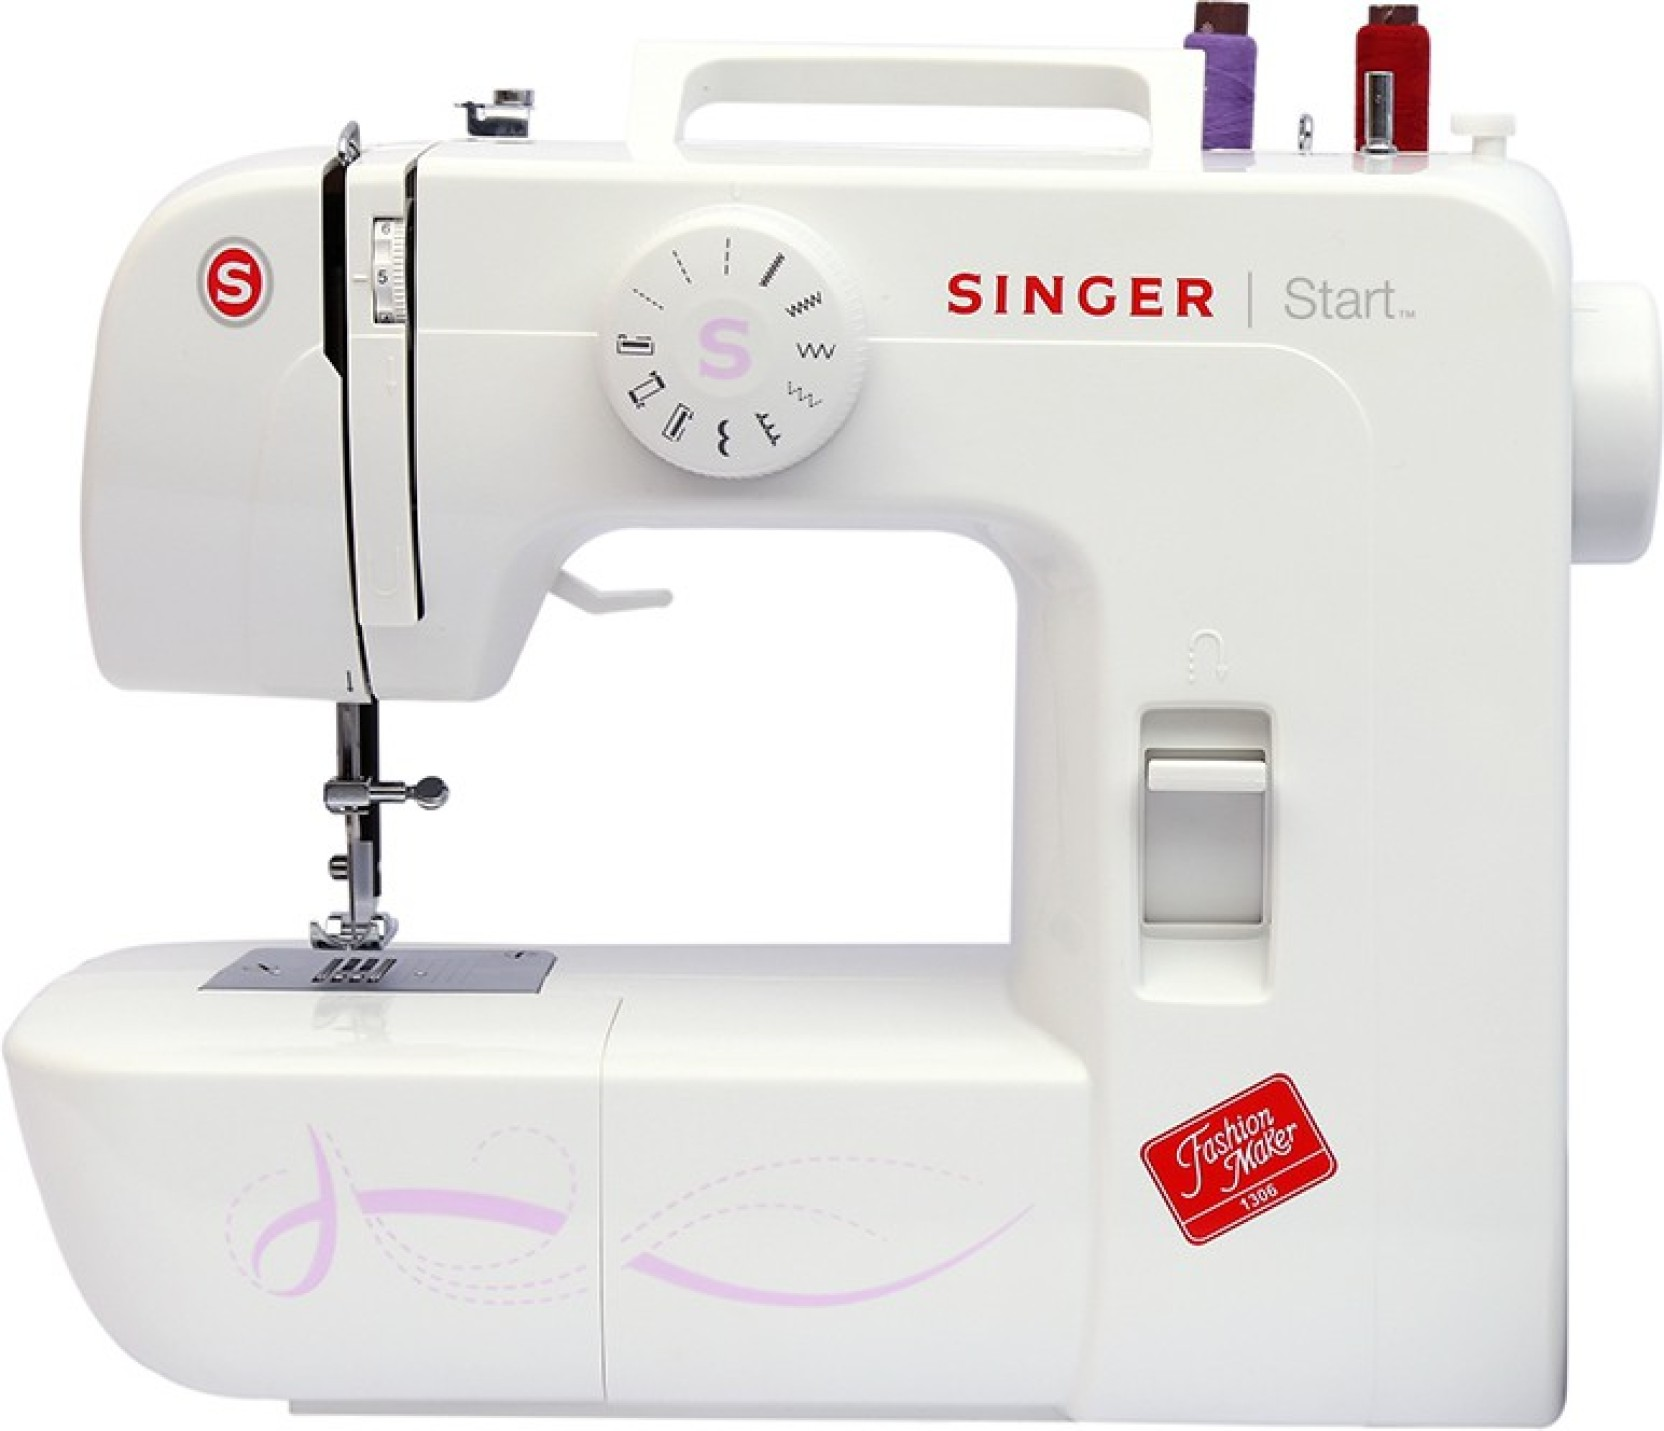 Singer Start Fm1306 Electric Sewing Machine Price in India ...